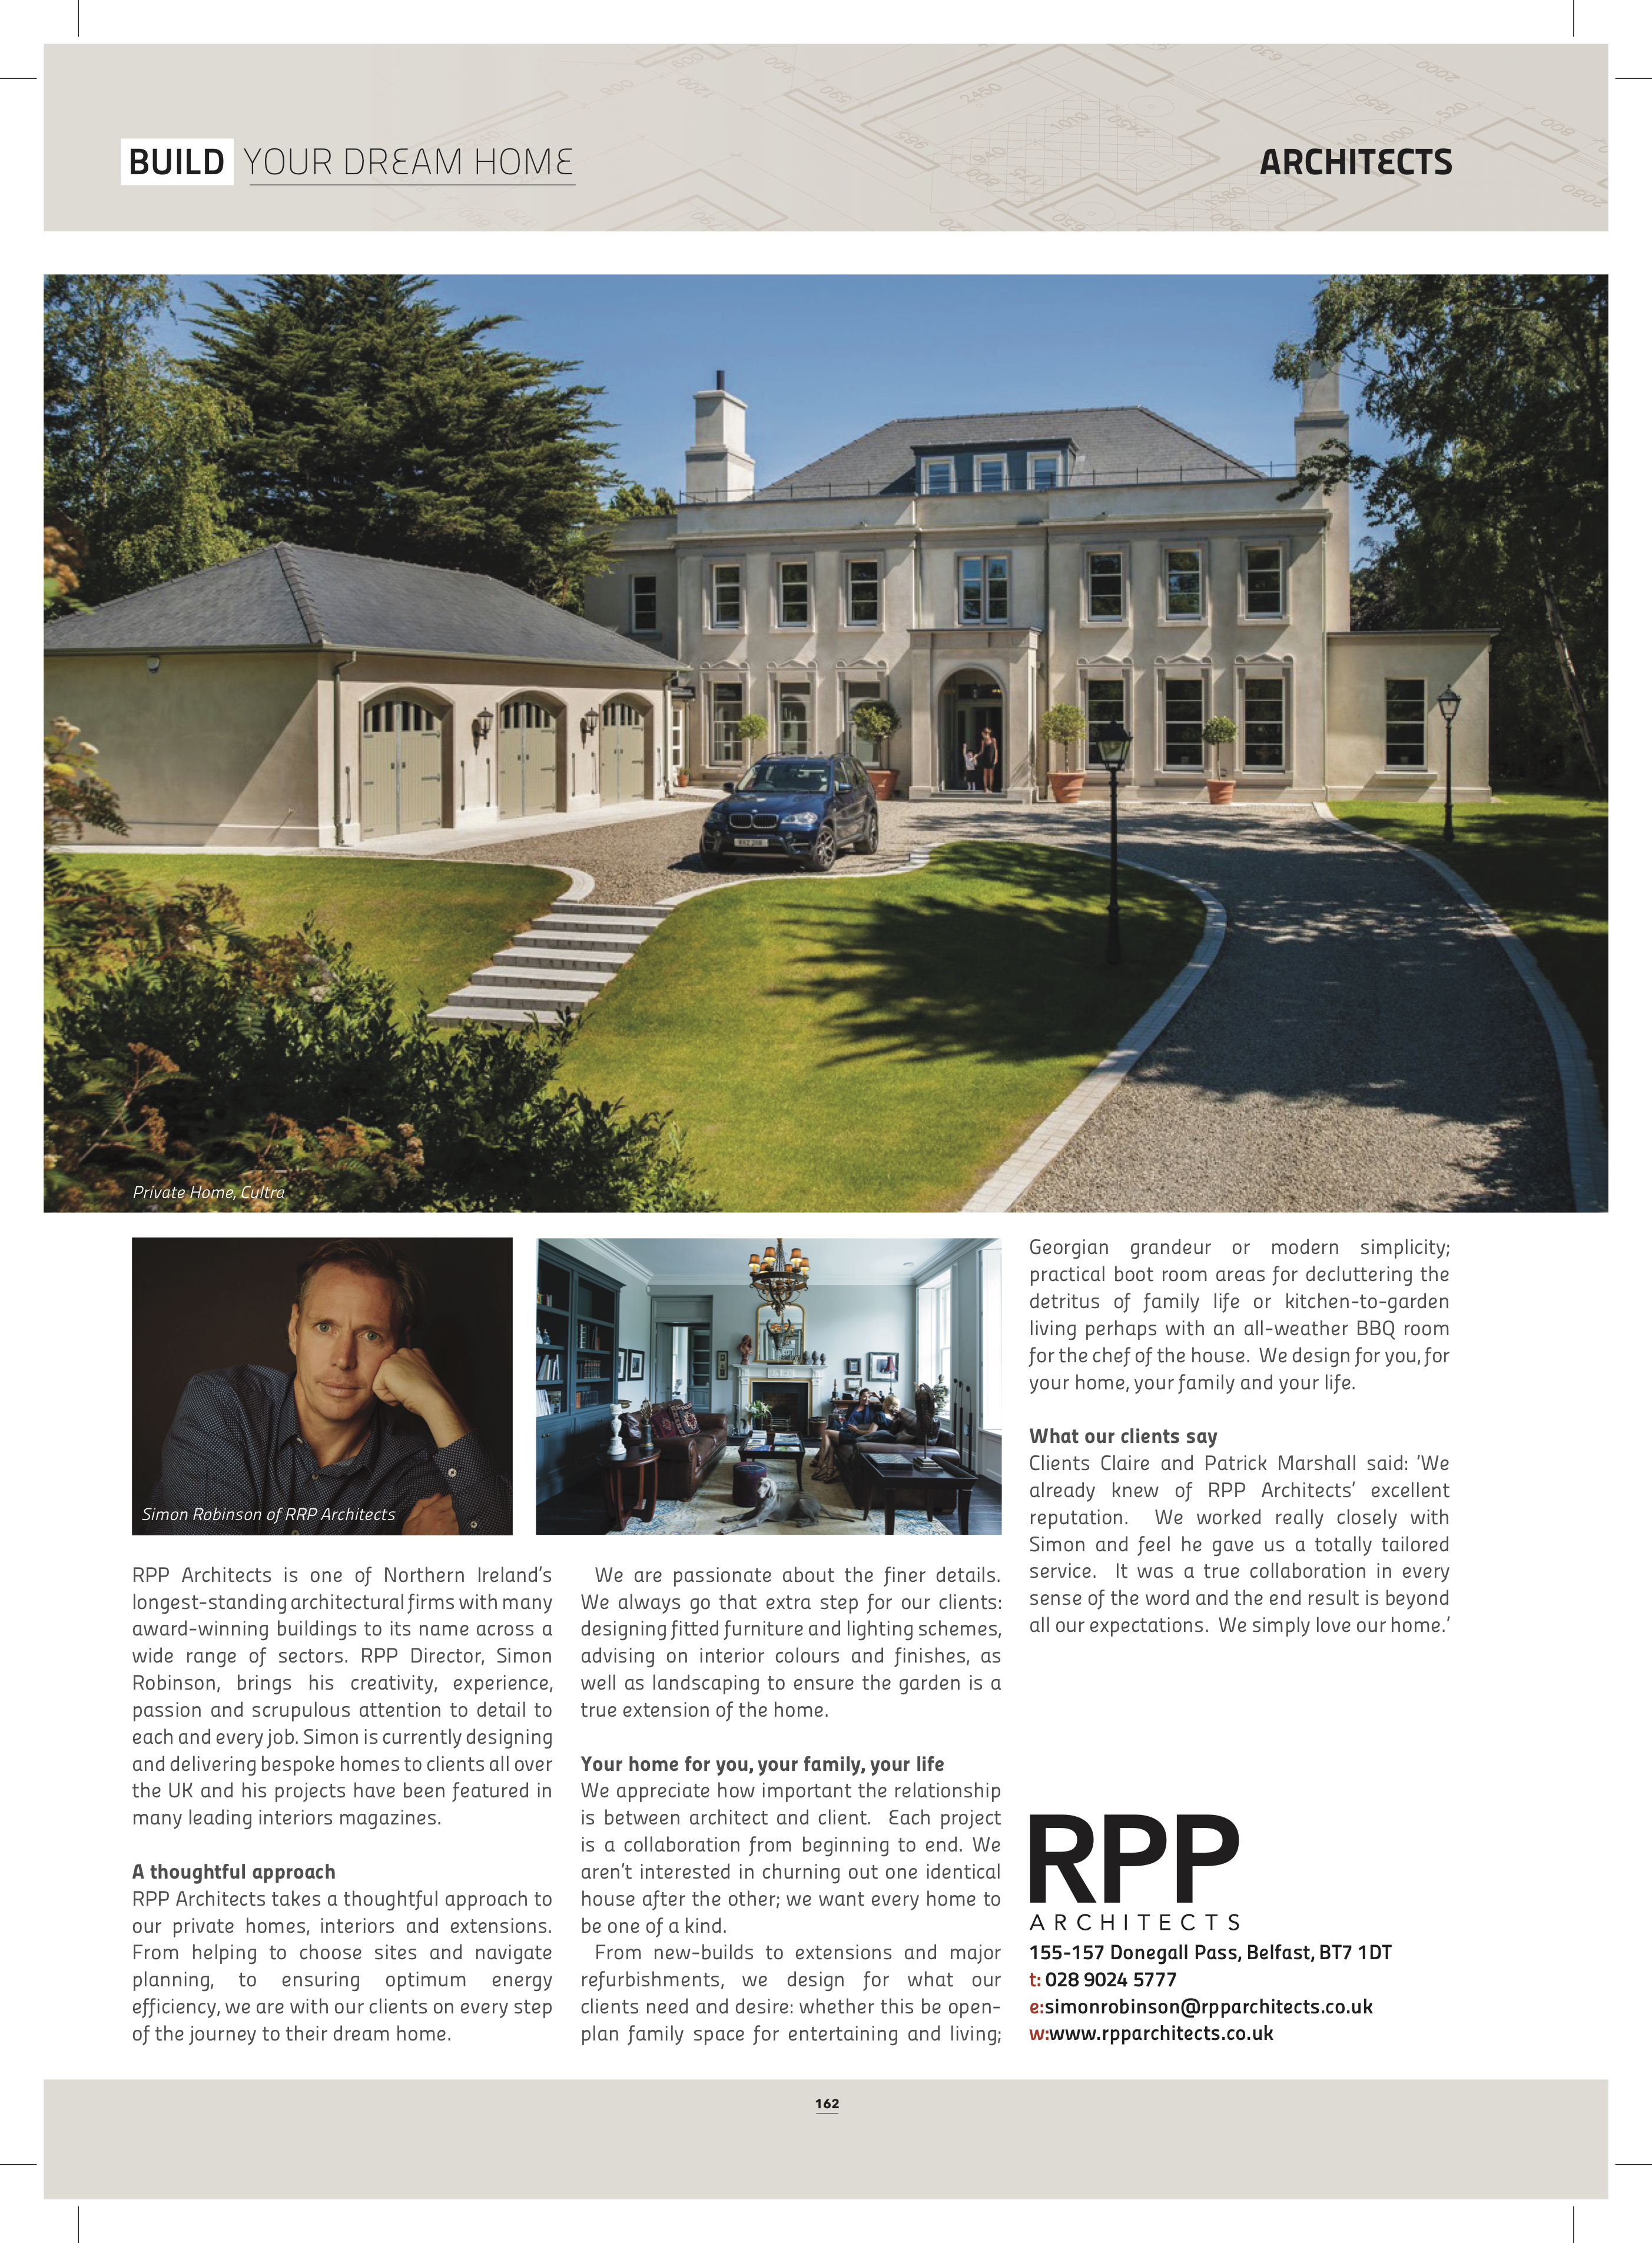 RPP Architects feature in this month s Build your dream Home in